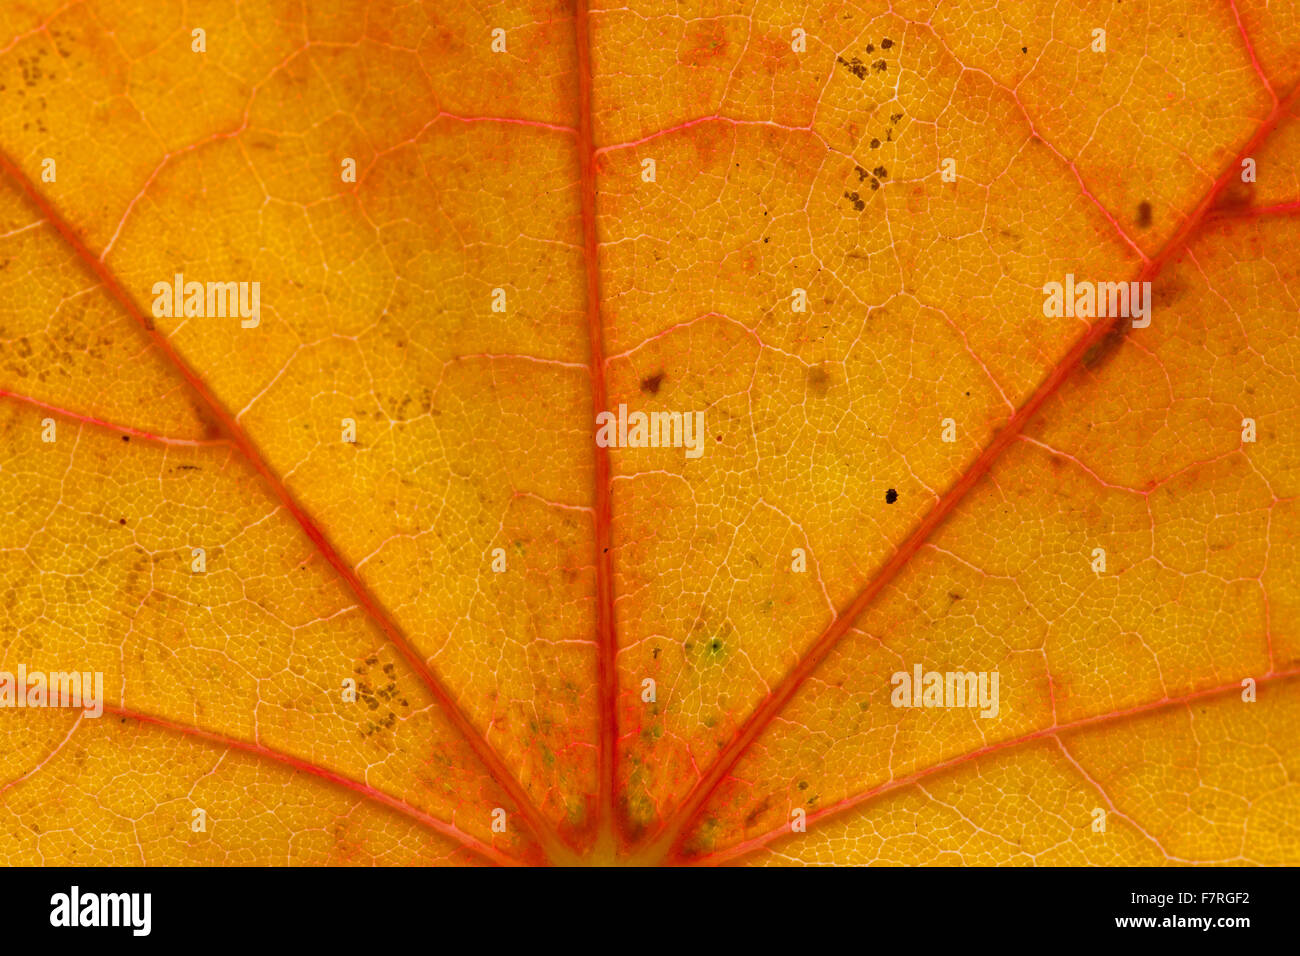 Norway maple (Acer platanoides) close up of leaf in orange autumn colours showing veins - Stock Image